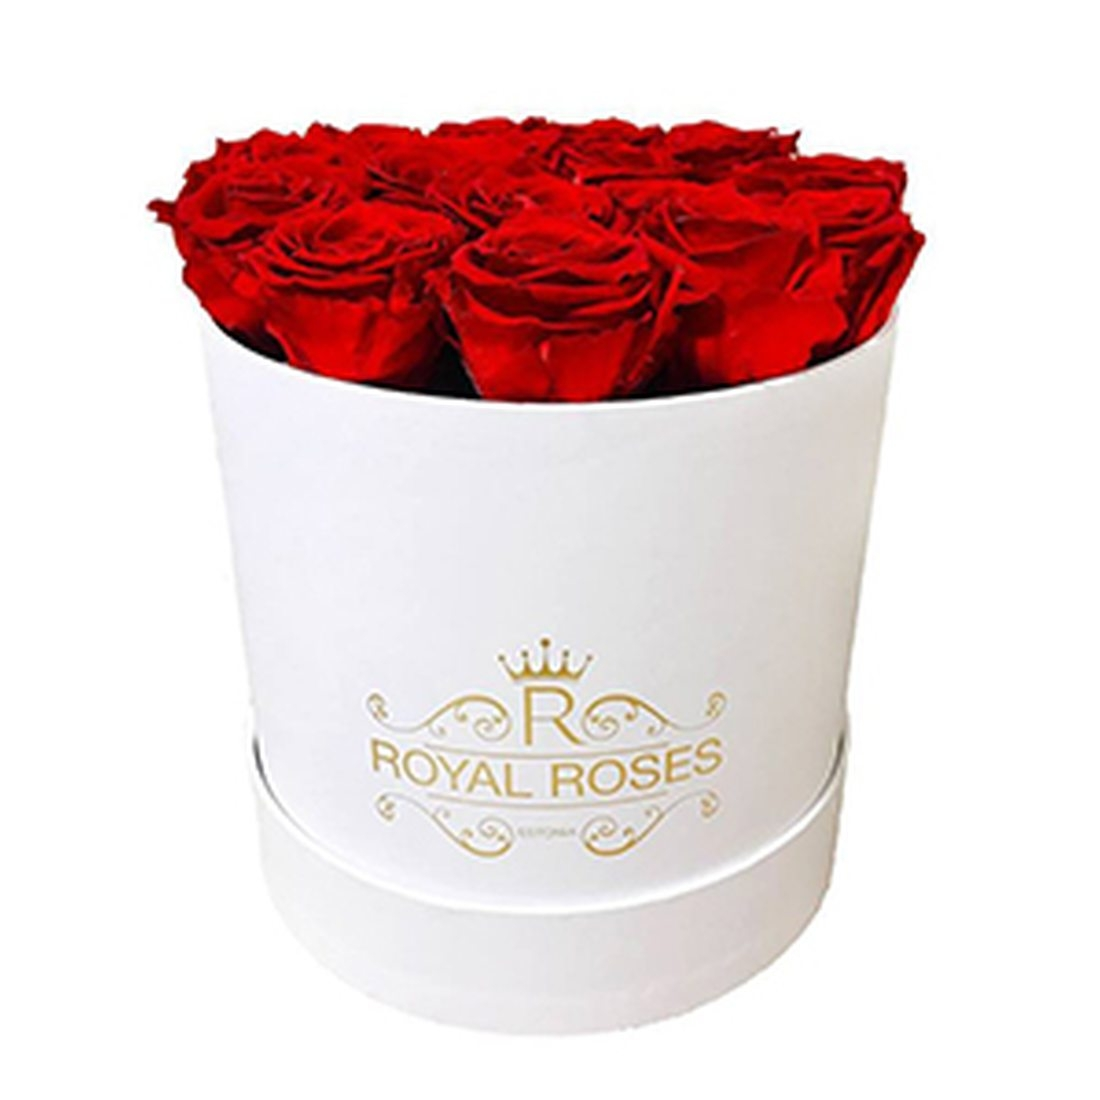 Royal Roses Estonia